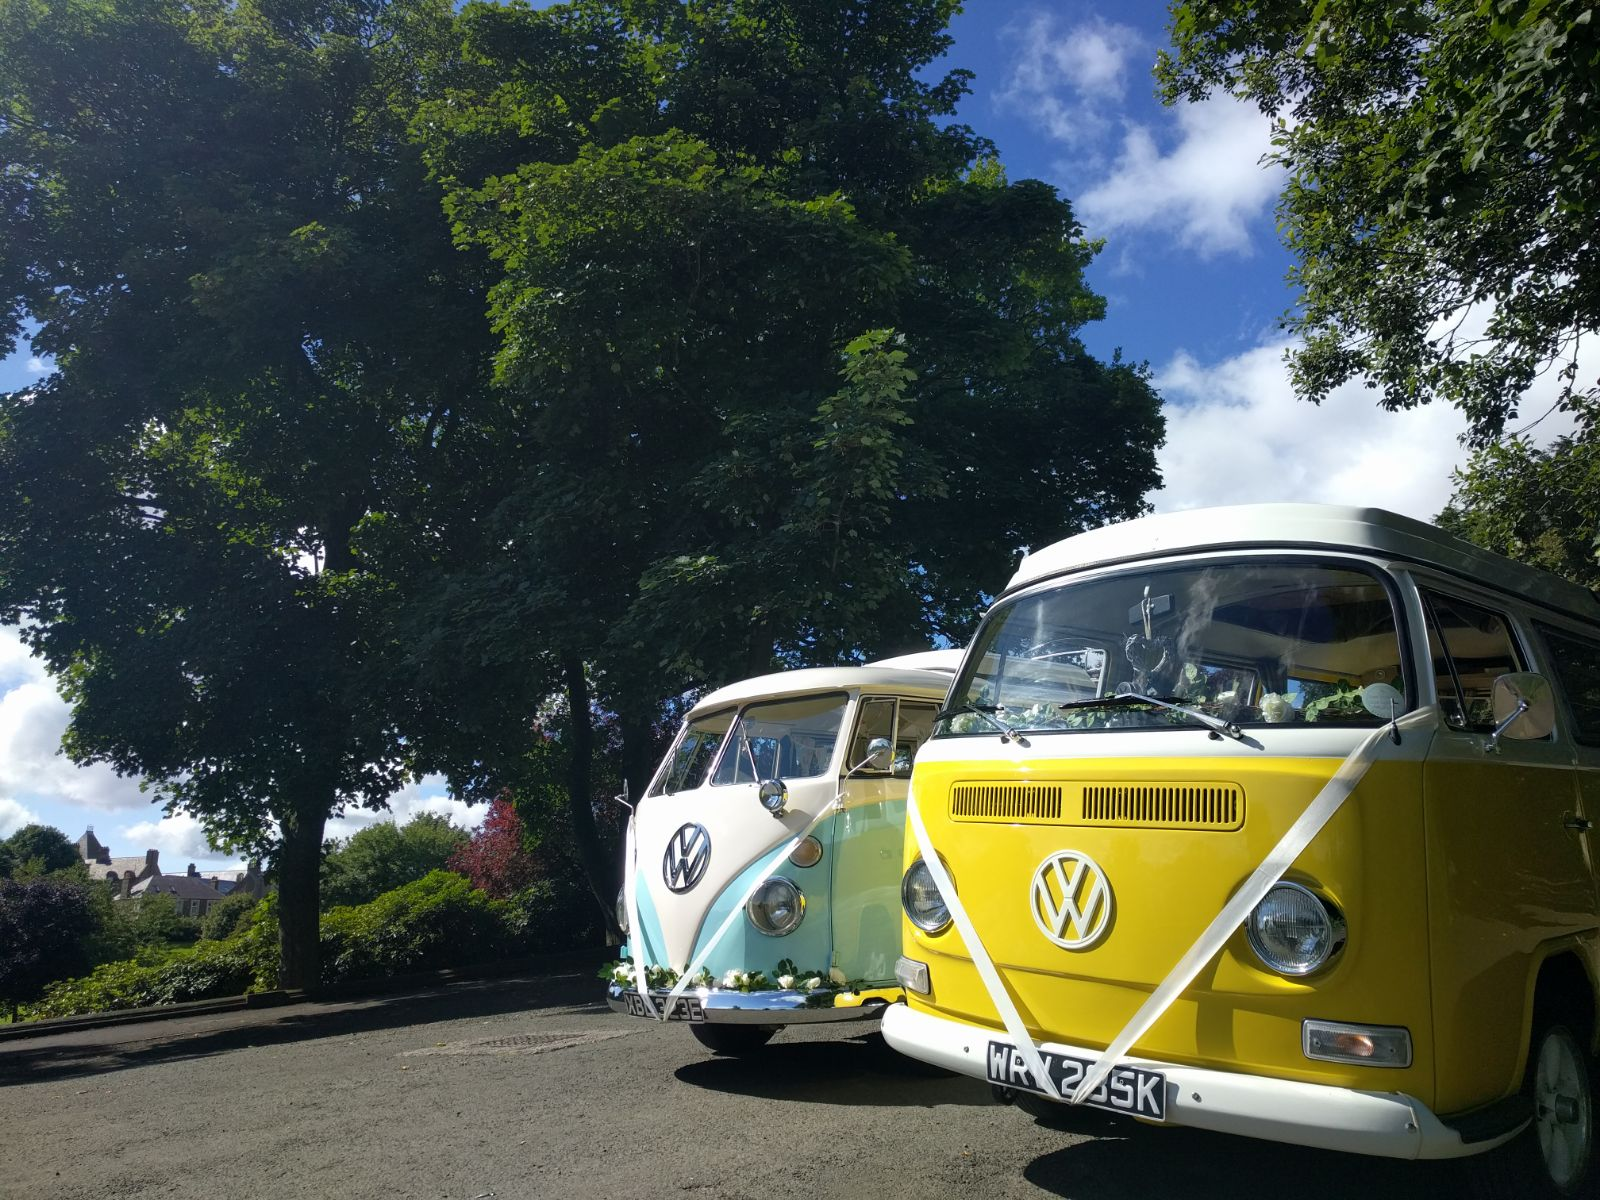 VW-wedding-campervan-scotland-3.jpg